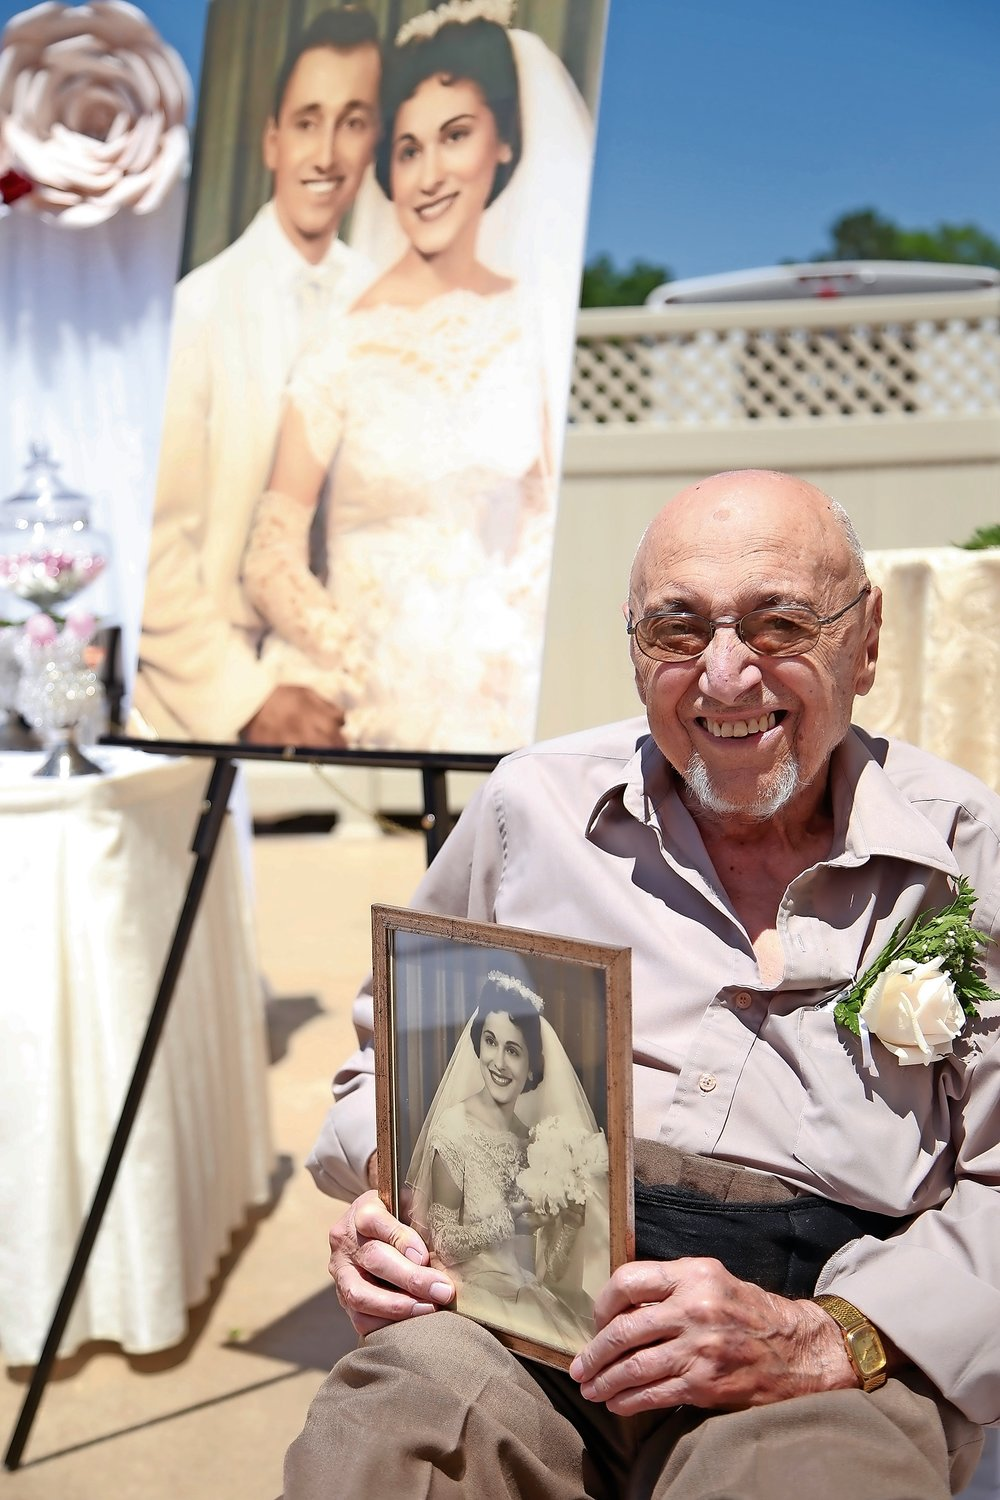 Although his wife, Eda, was unable to attend, Vincent DeMatteis brought along her photo.